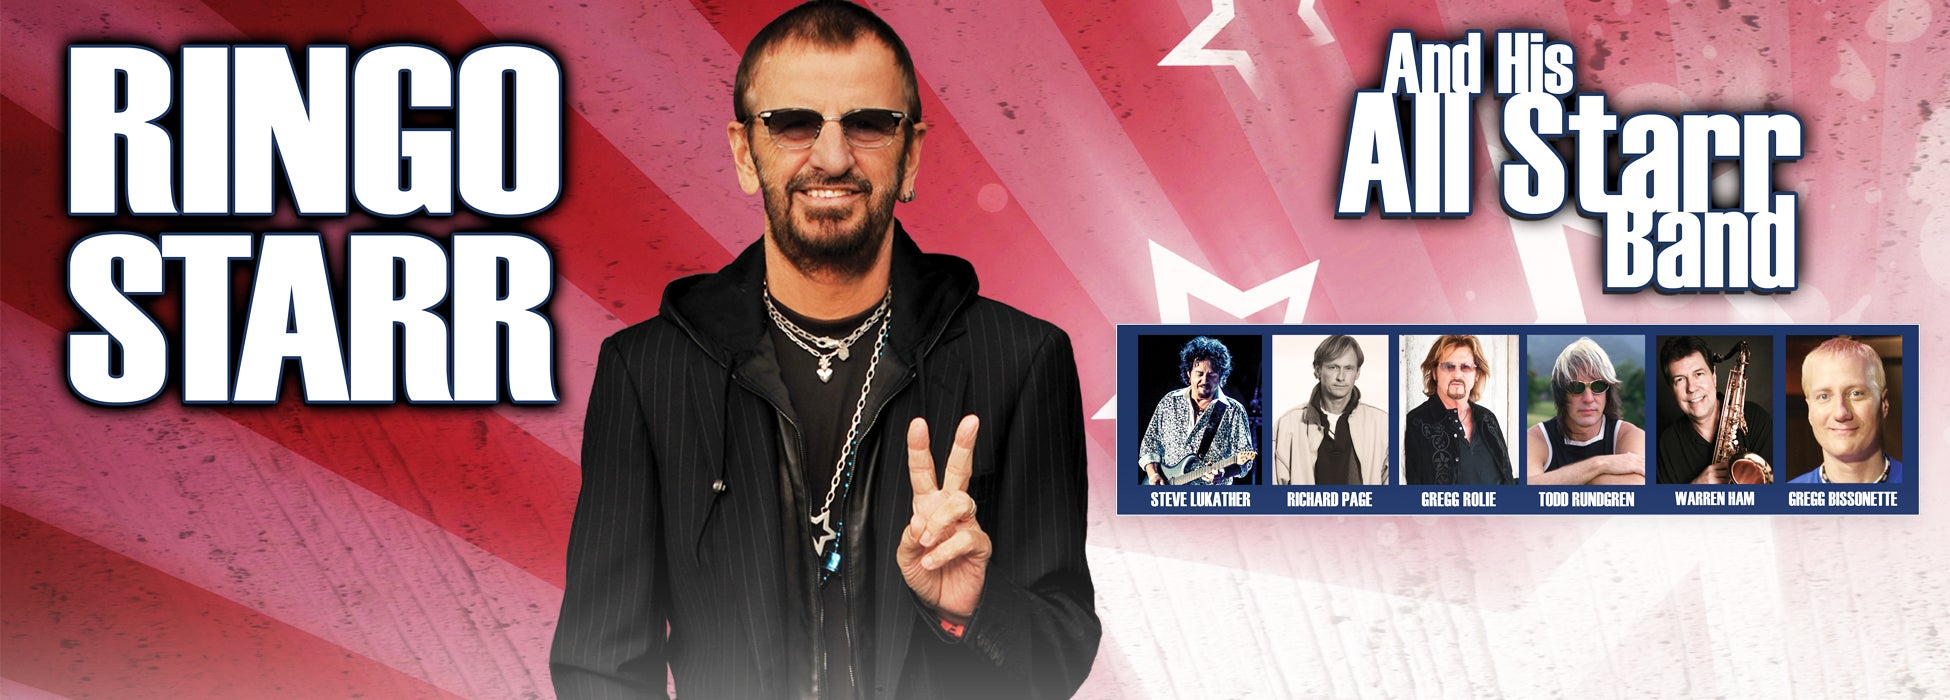 Ringo Starr Norfolk 1950x700 Website